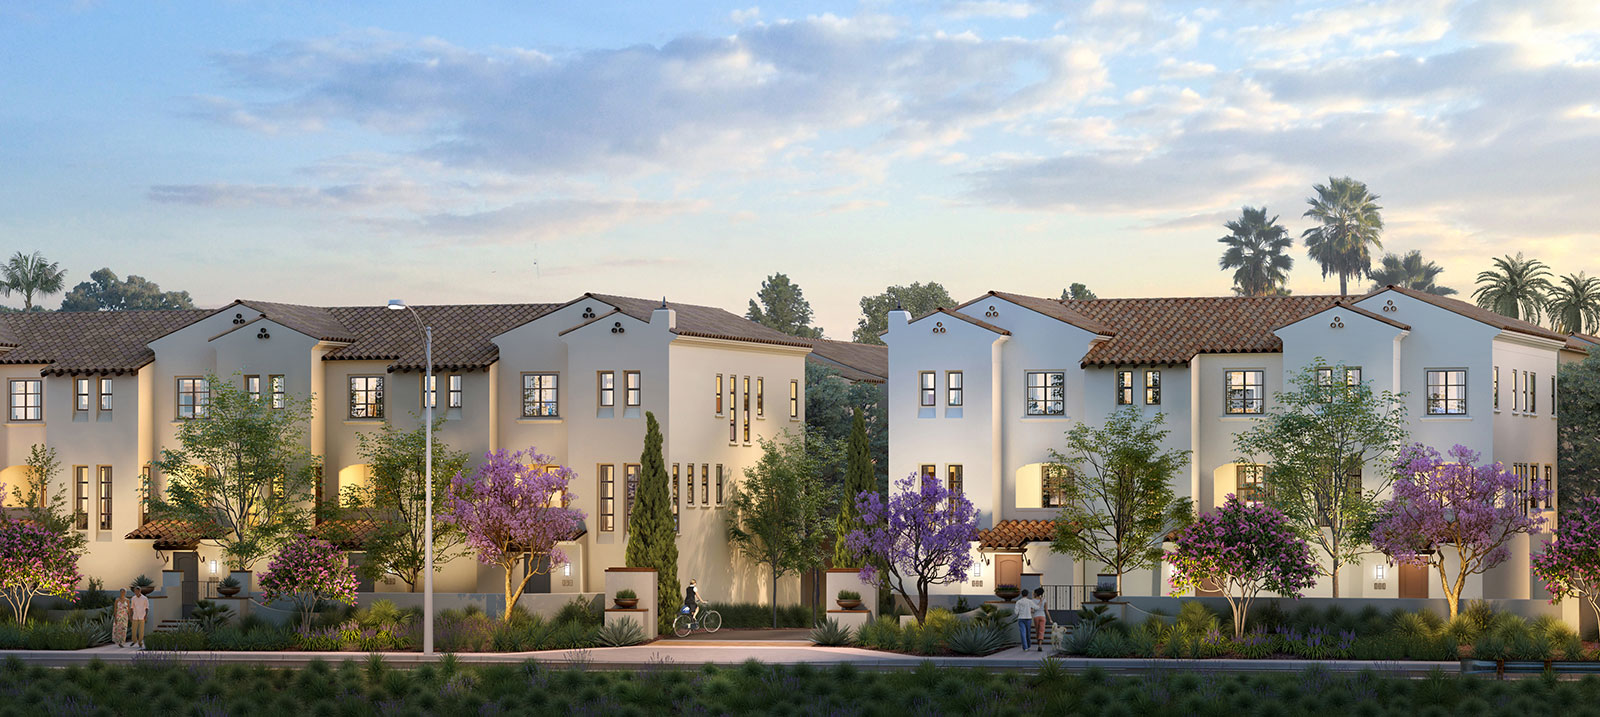 Westside Walk Render, New Costa Mesa Townhomes